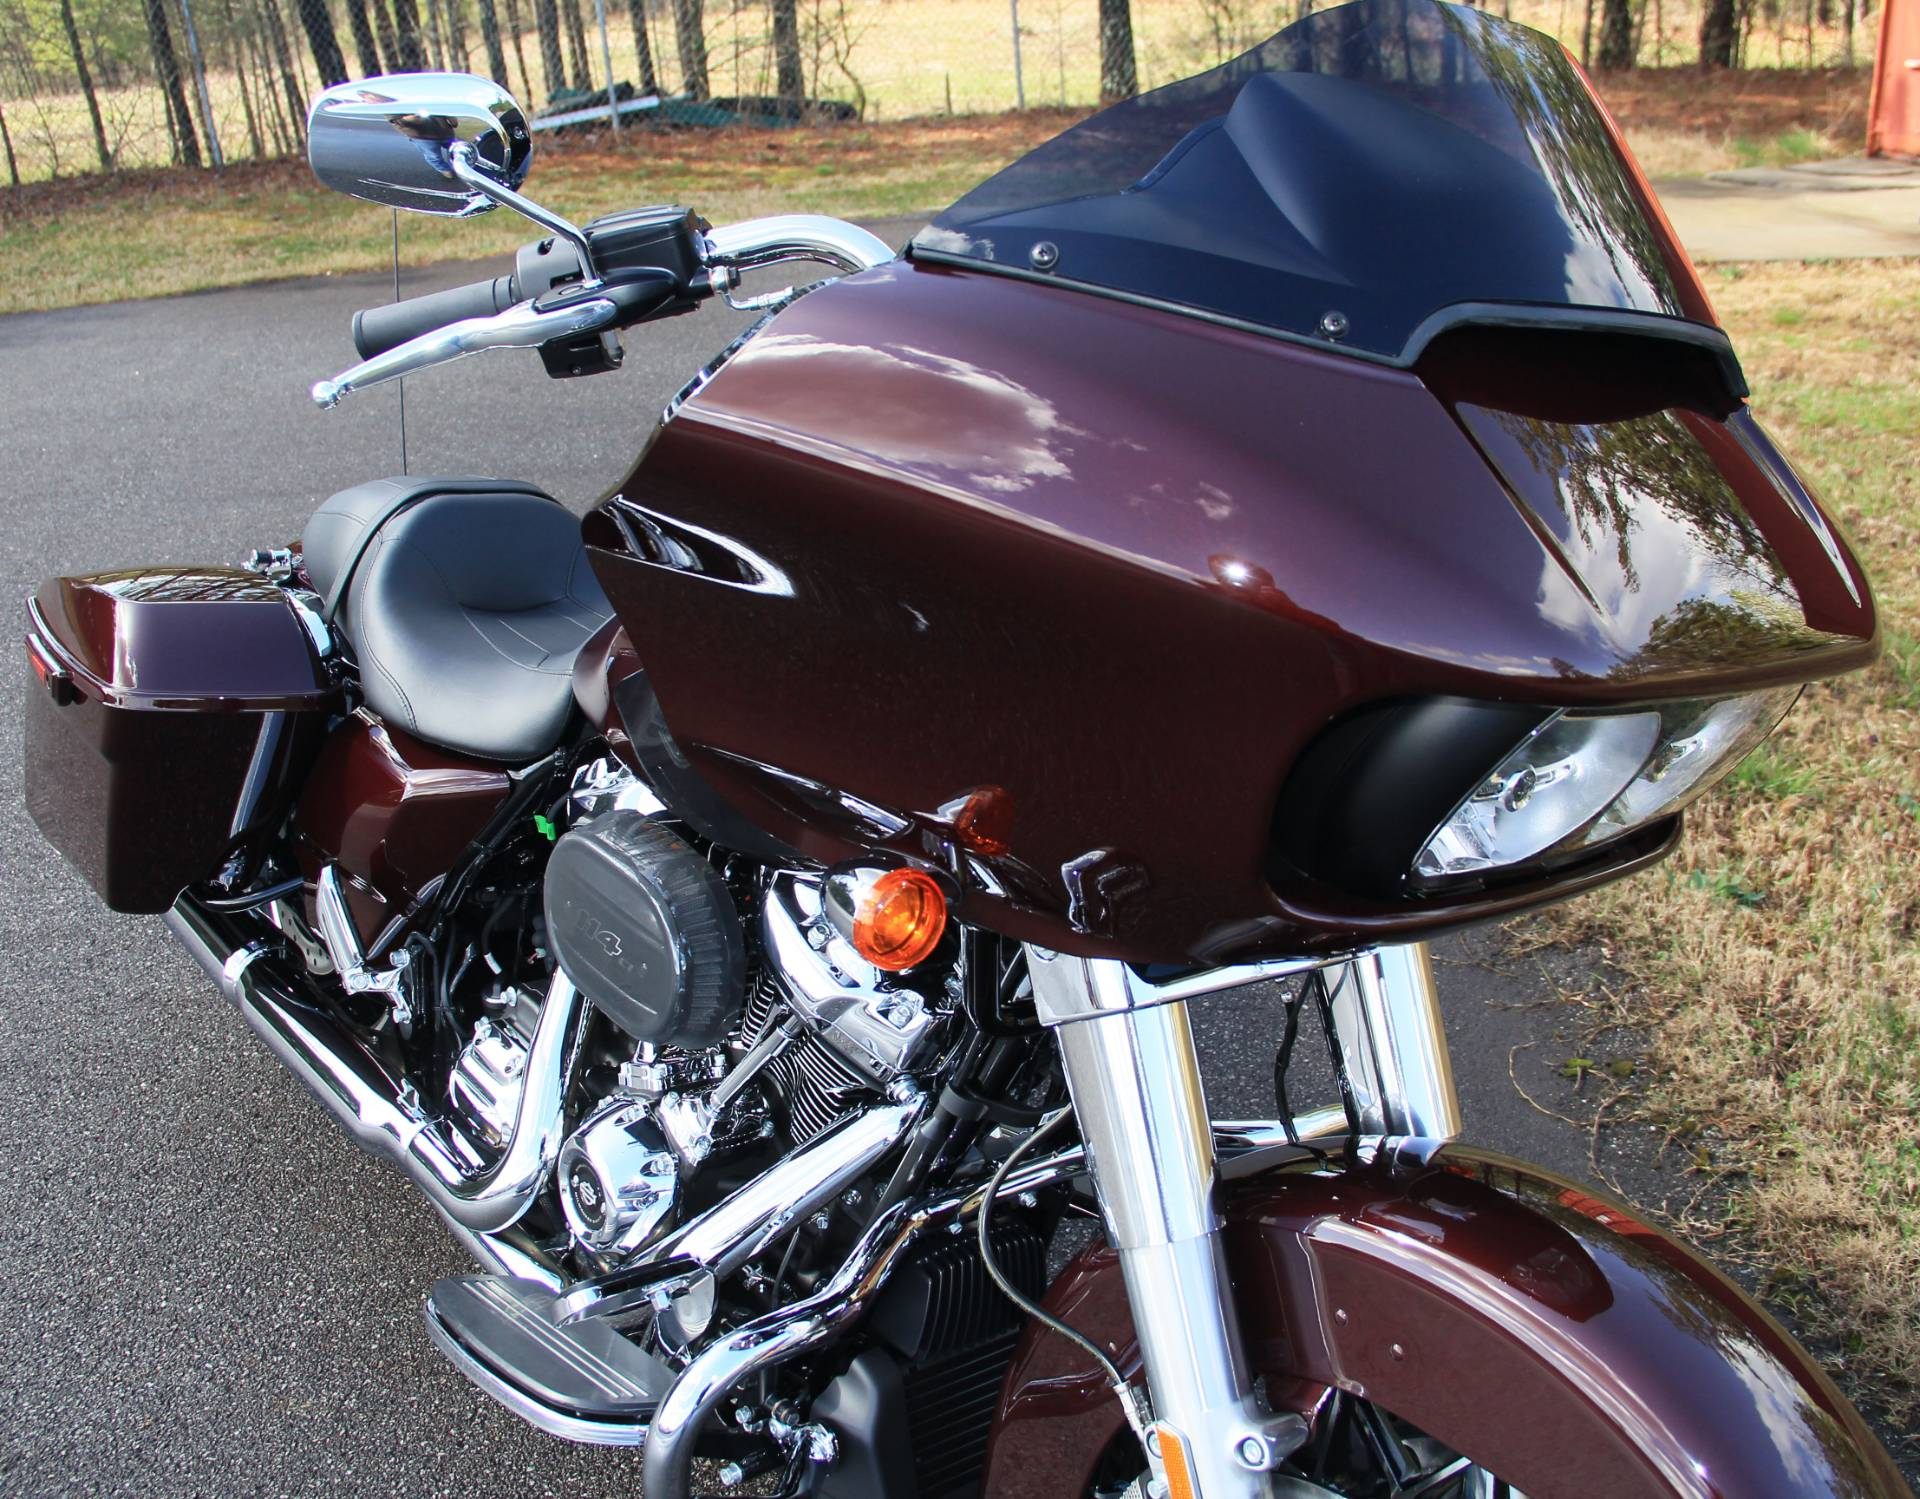 2021 Harley-Davidson Road Glide Special in Cartersville, Georgia - Photo 13